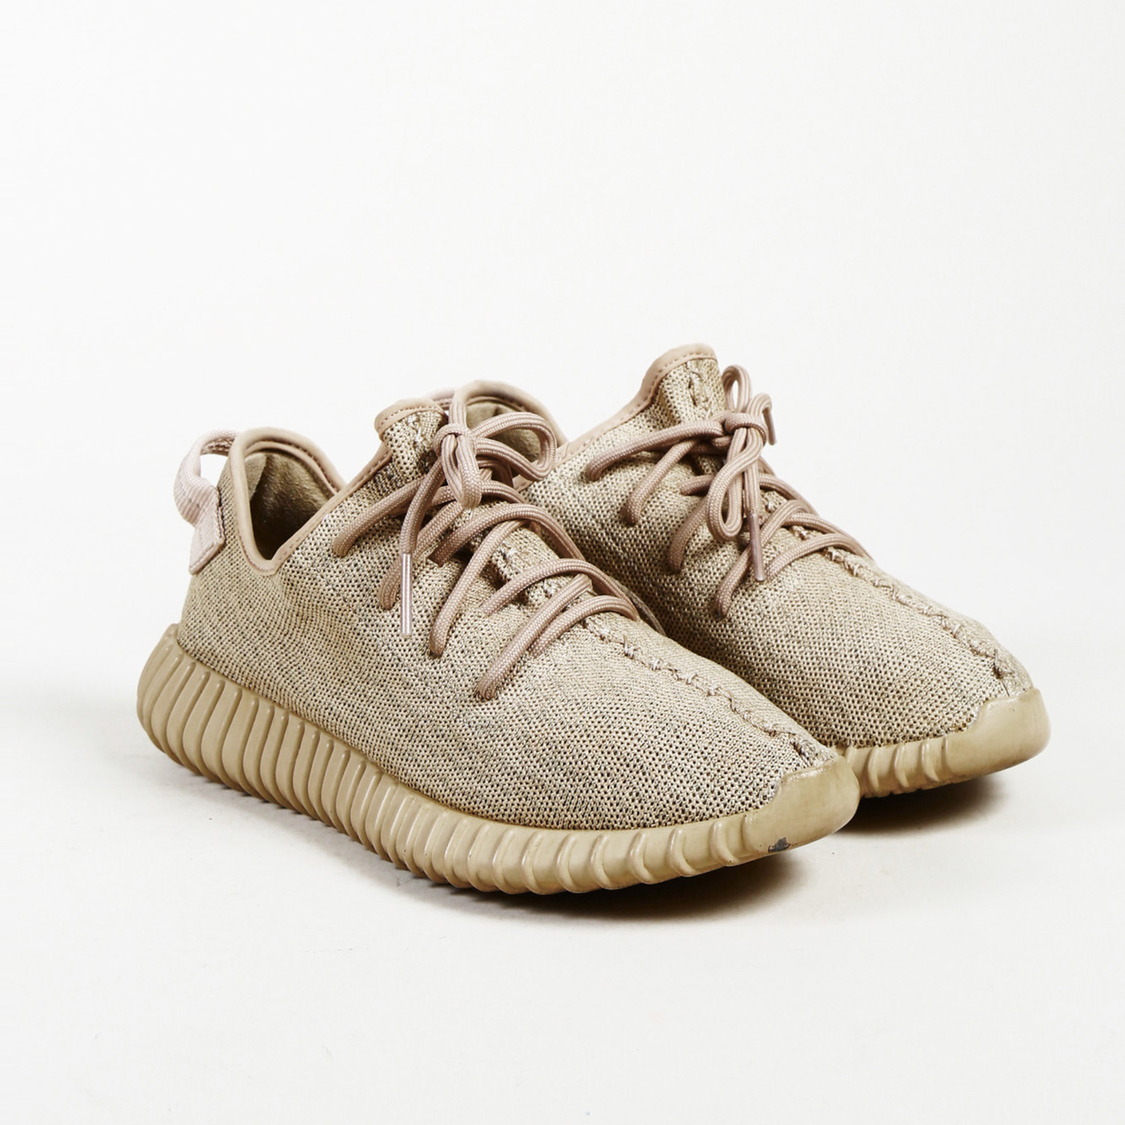 fee058278420f Details about YEEZY